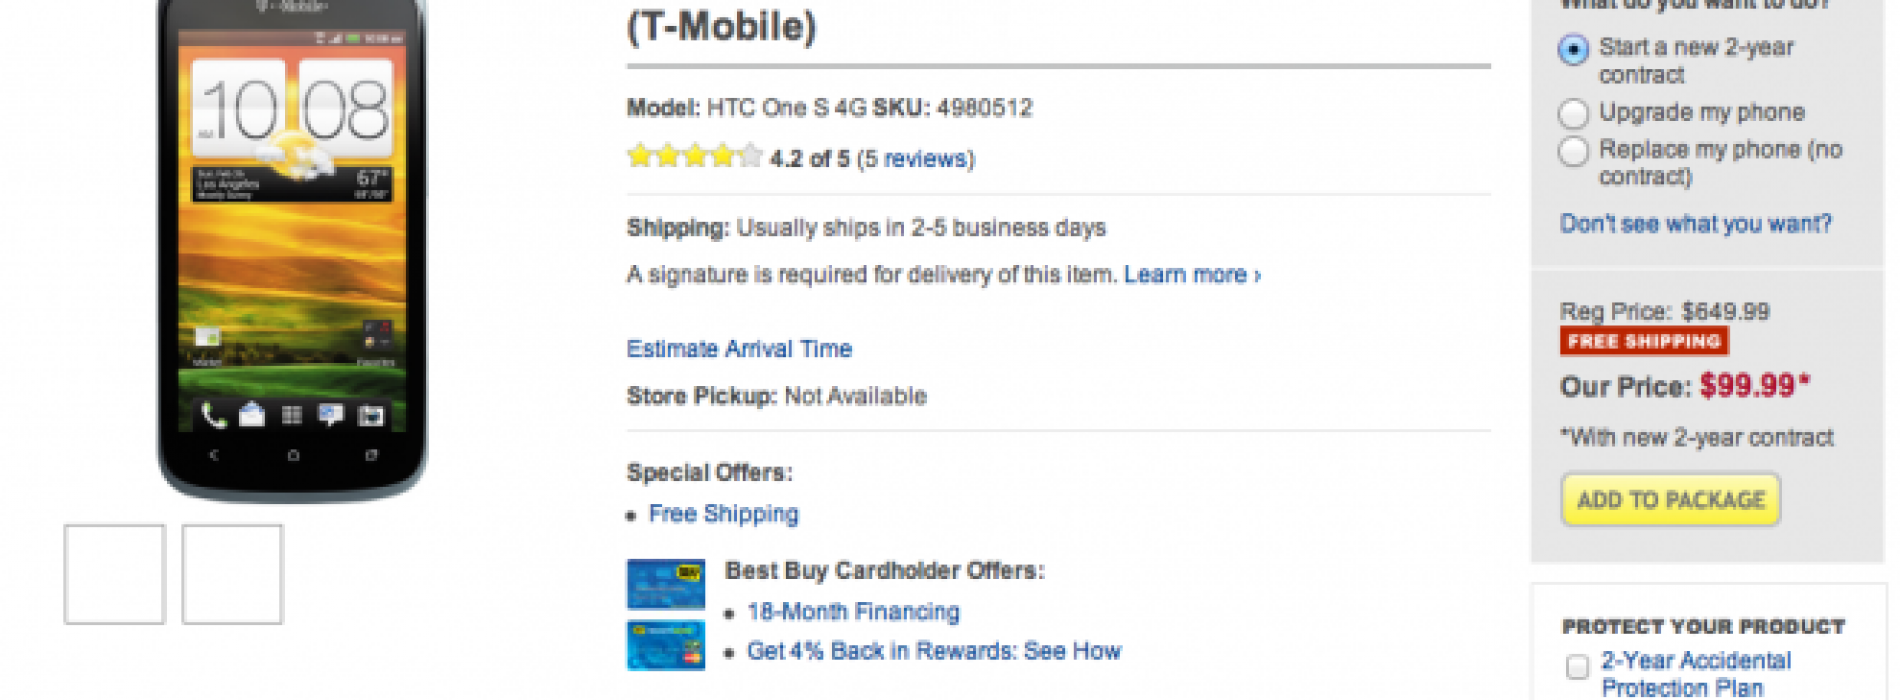 Best Buy selling the T-Mobile HTC One S for $99 on a new account or upgrade